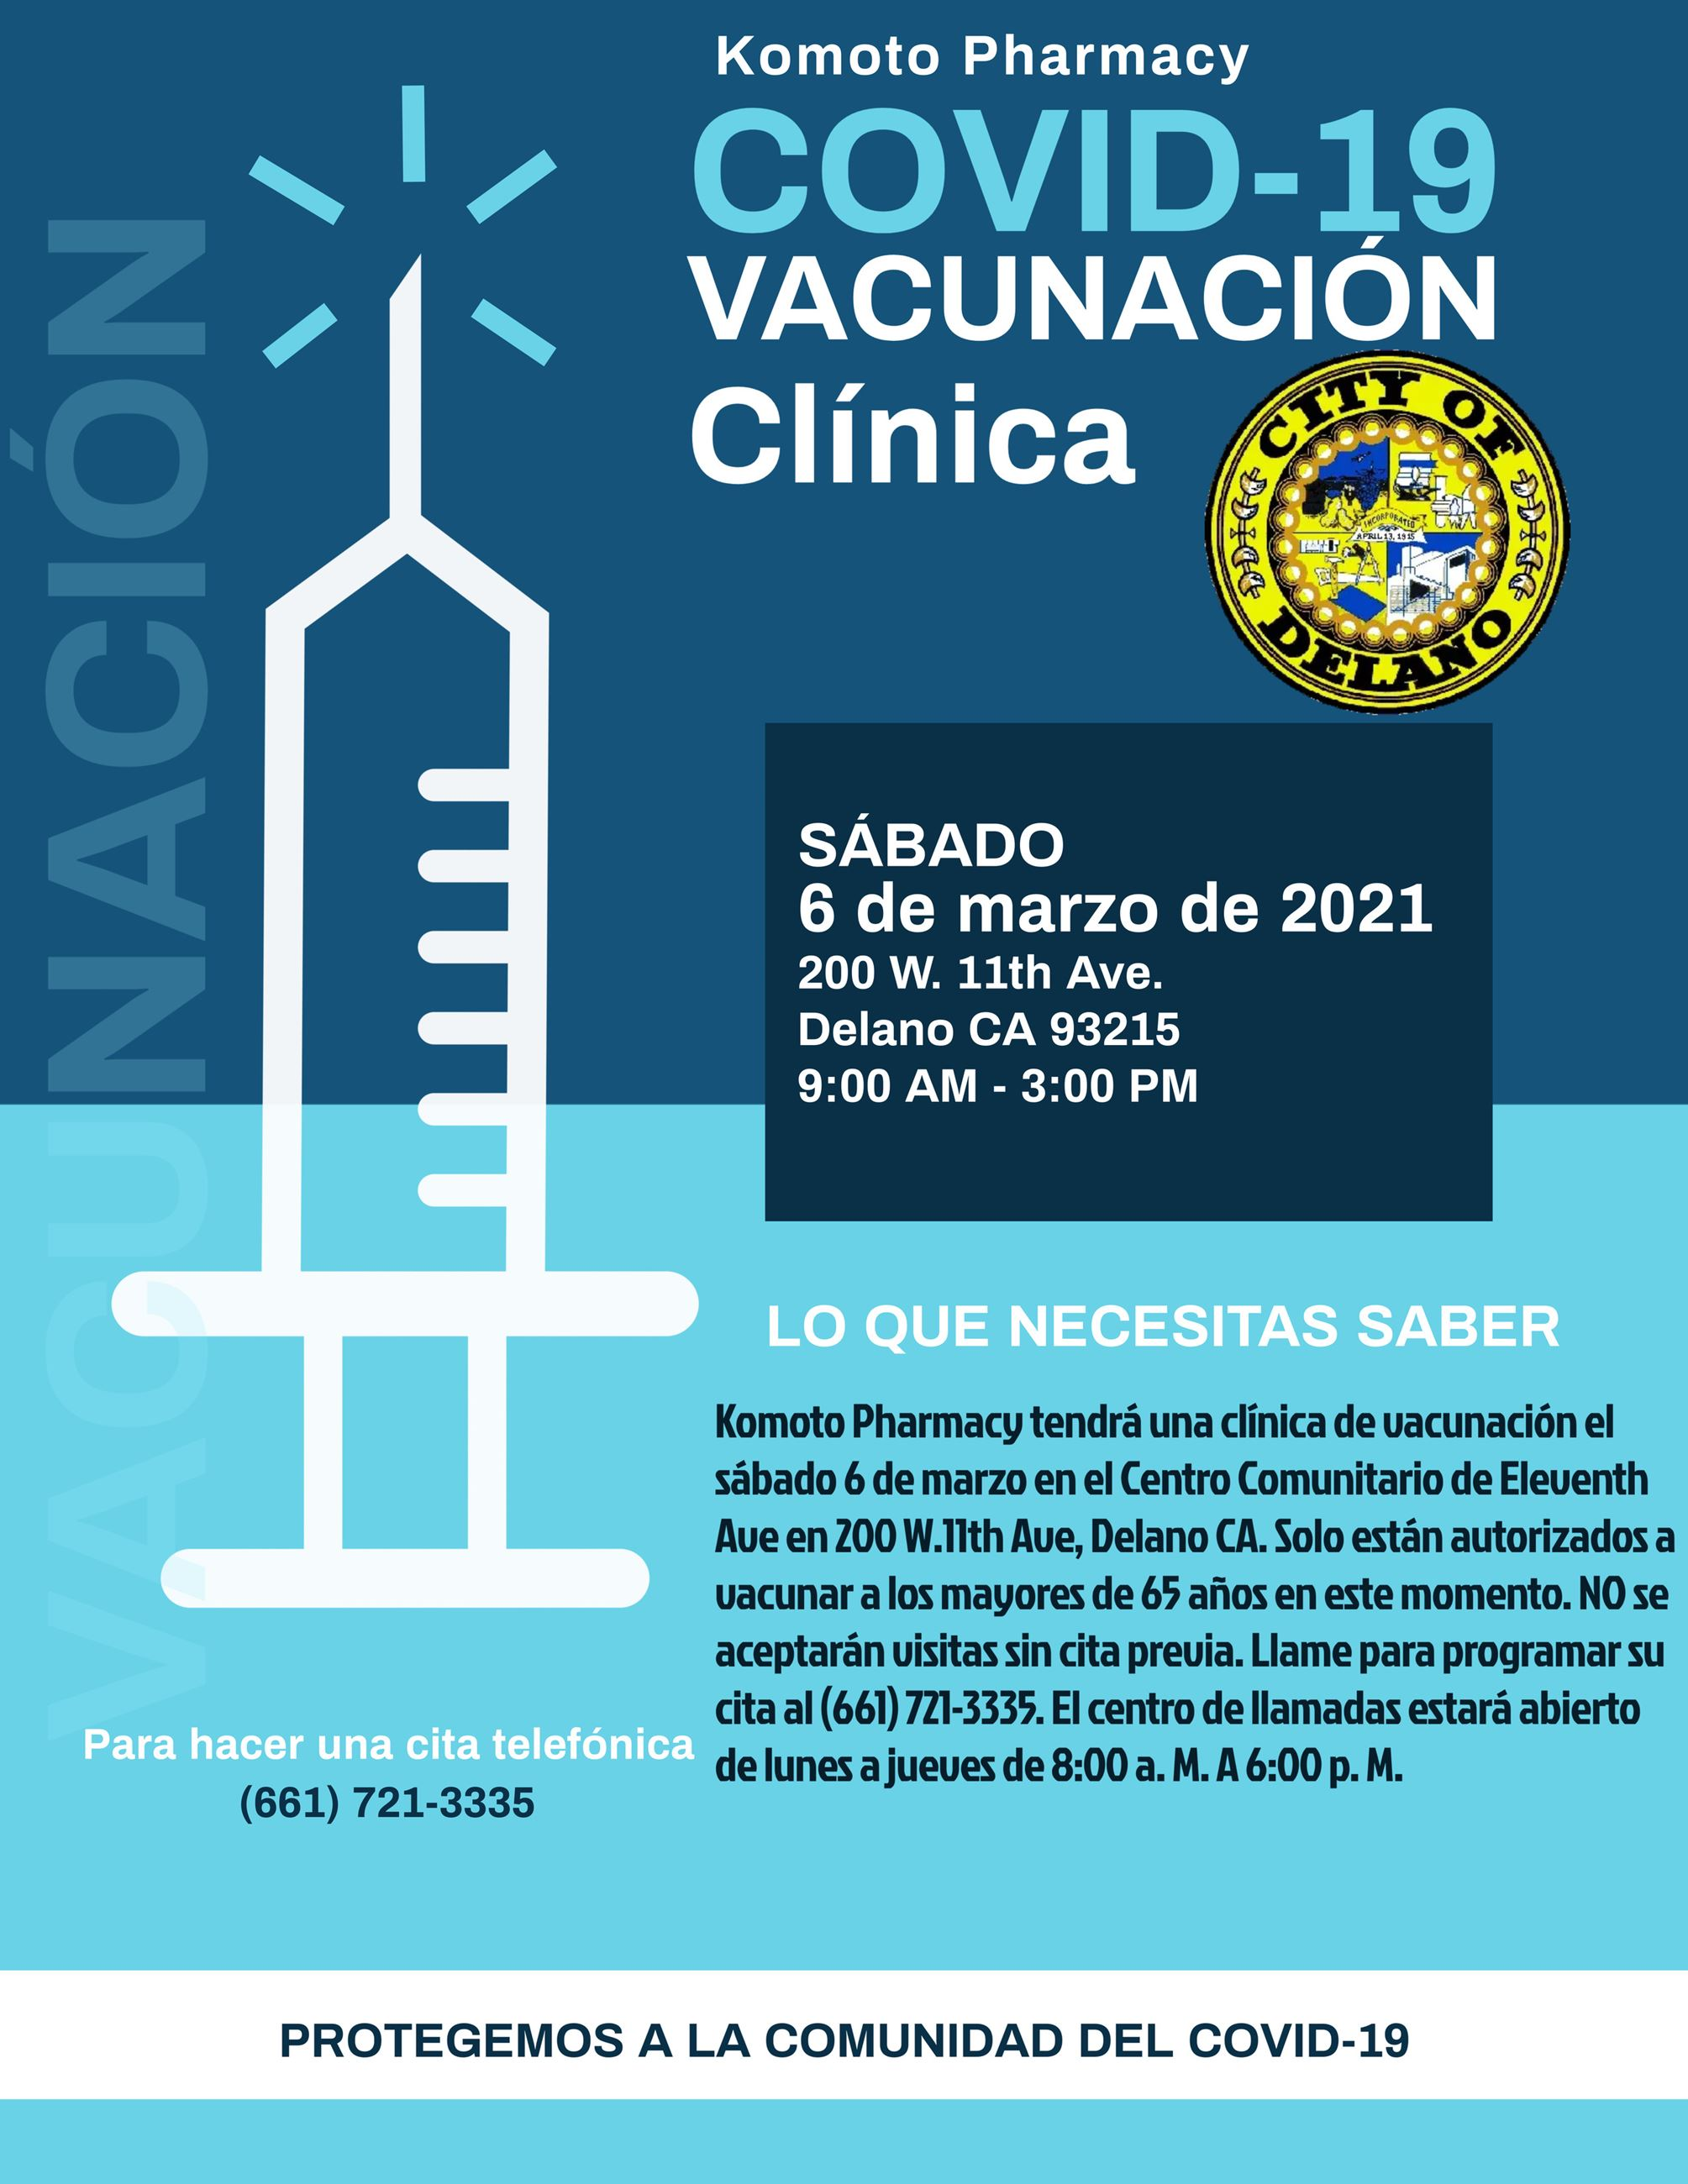 Spanish COVID-19 Vaccination Clinic Flyer